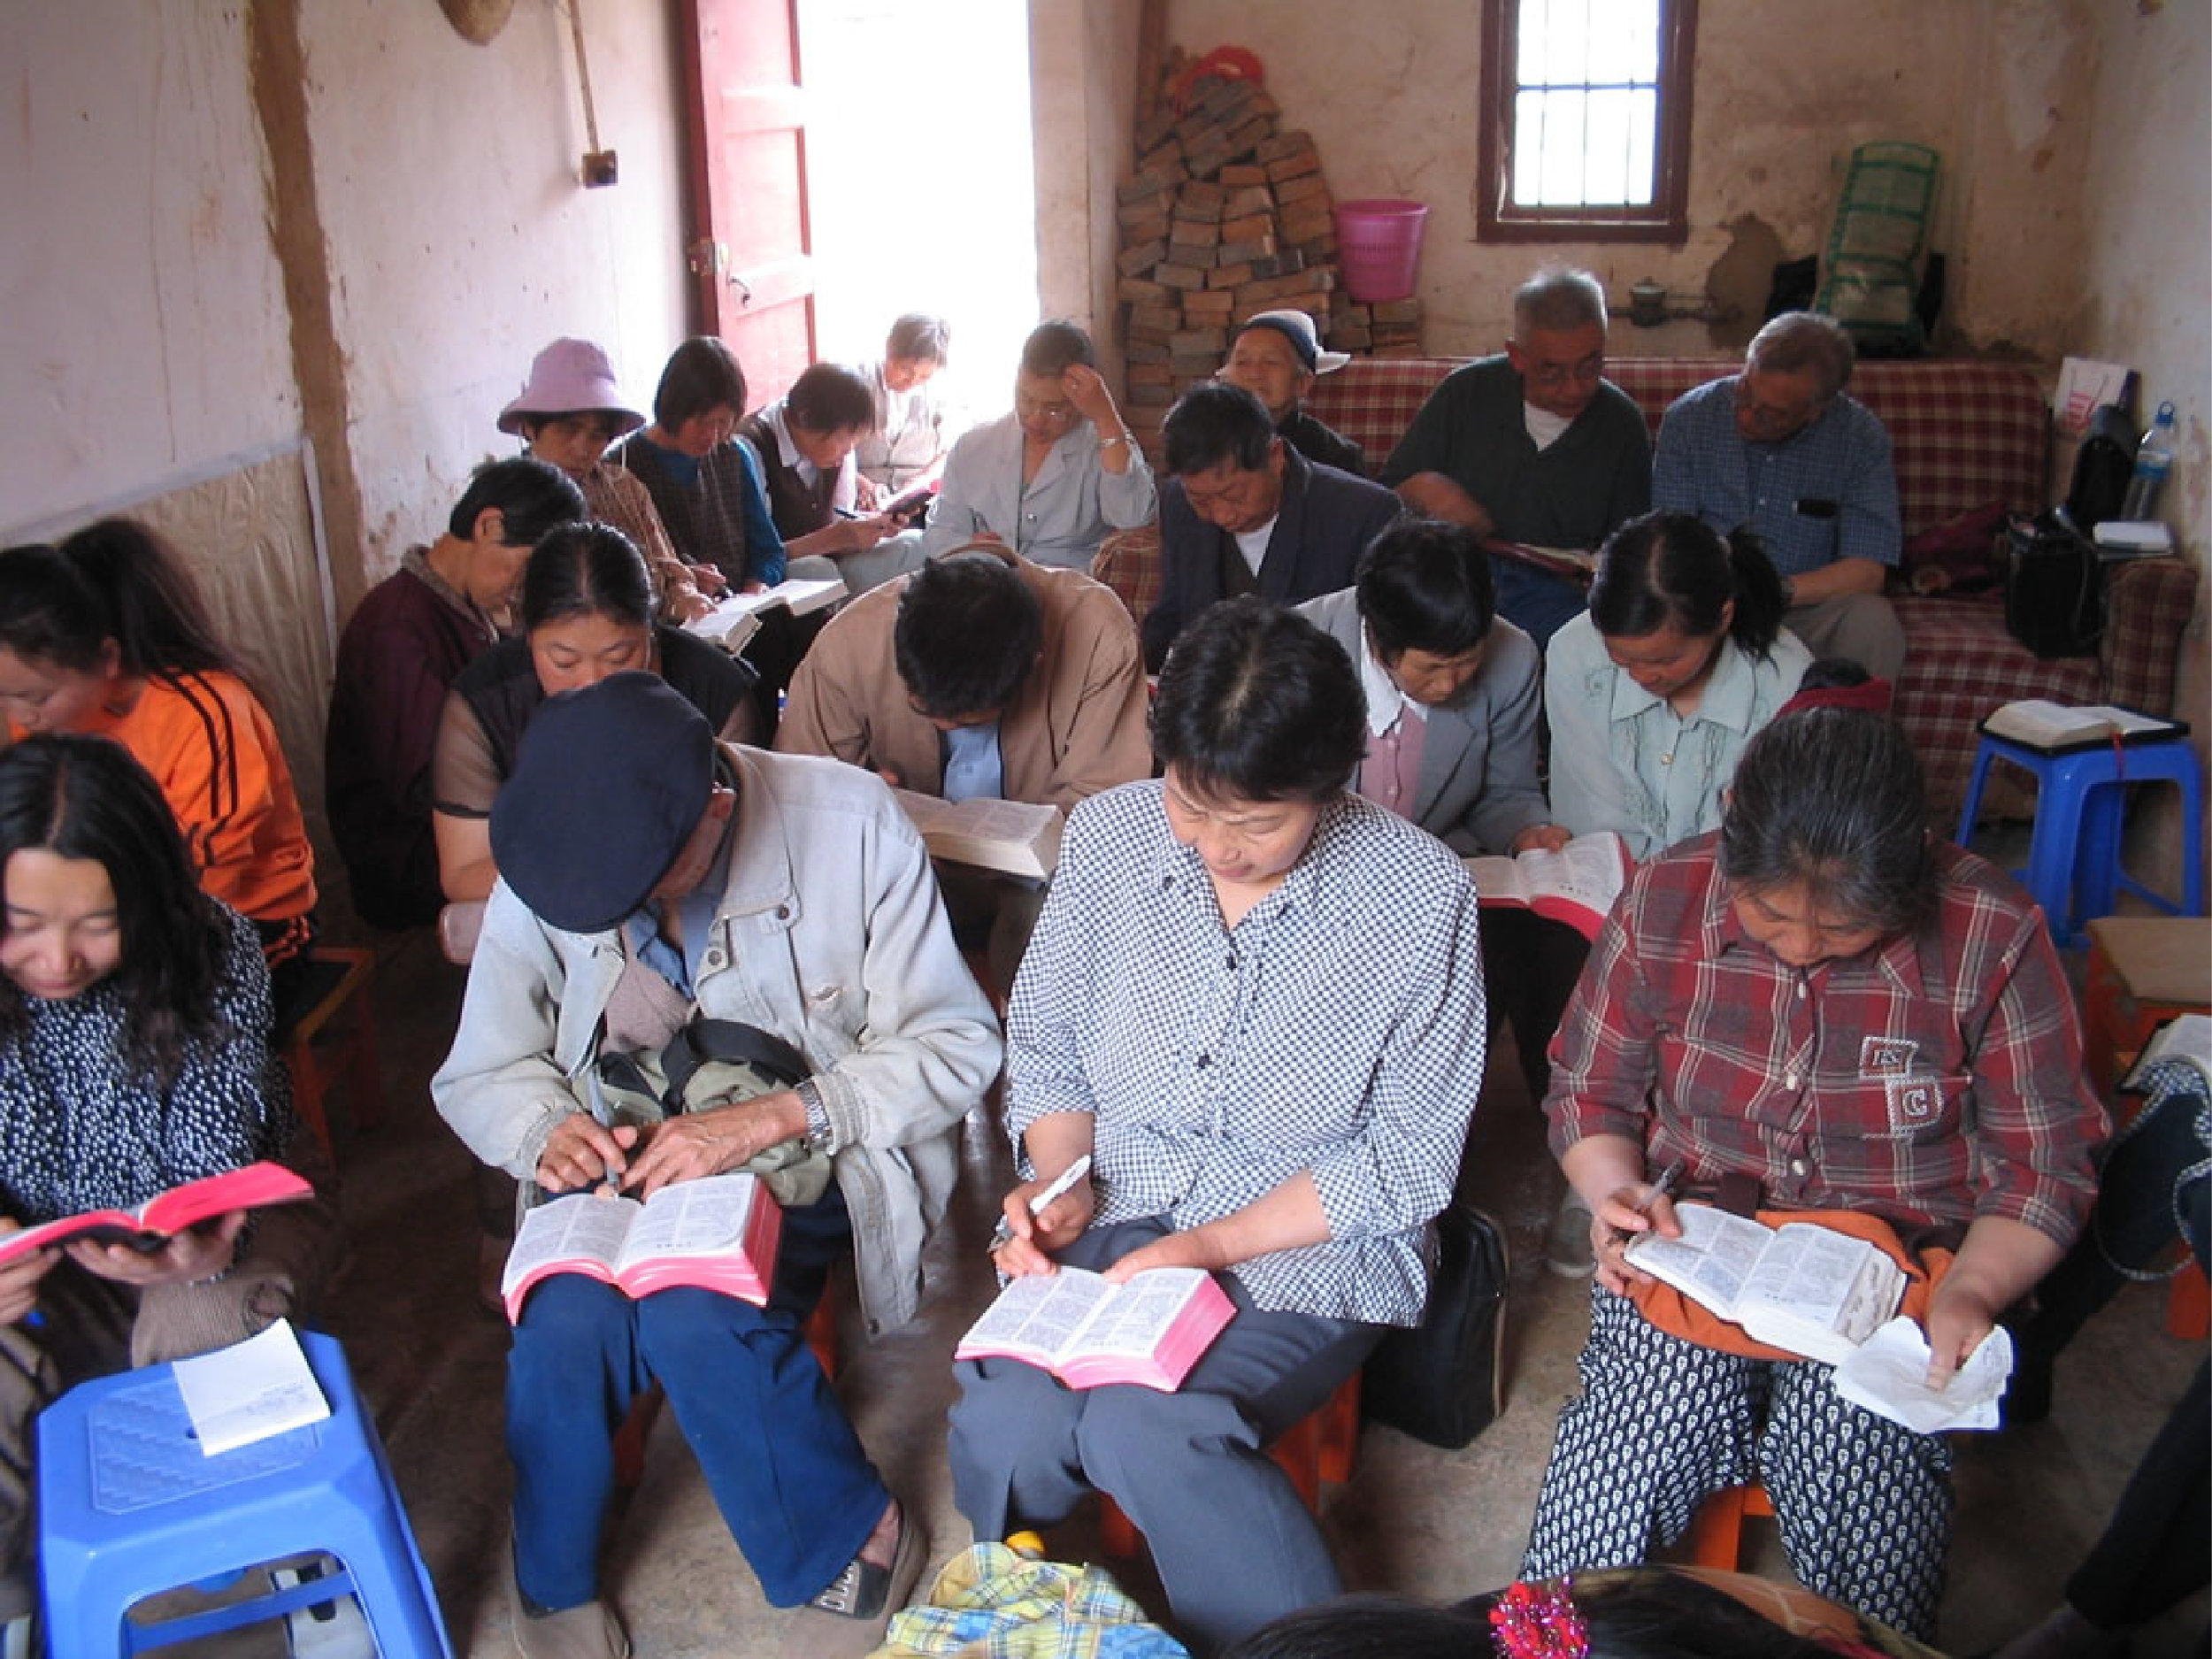 Chinese Christians in a Home Church